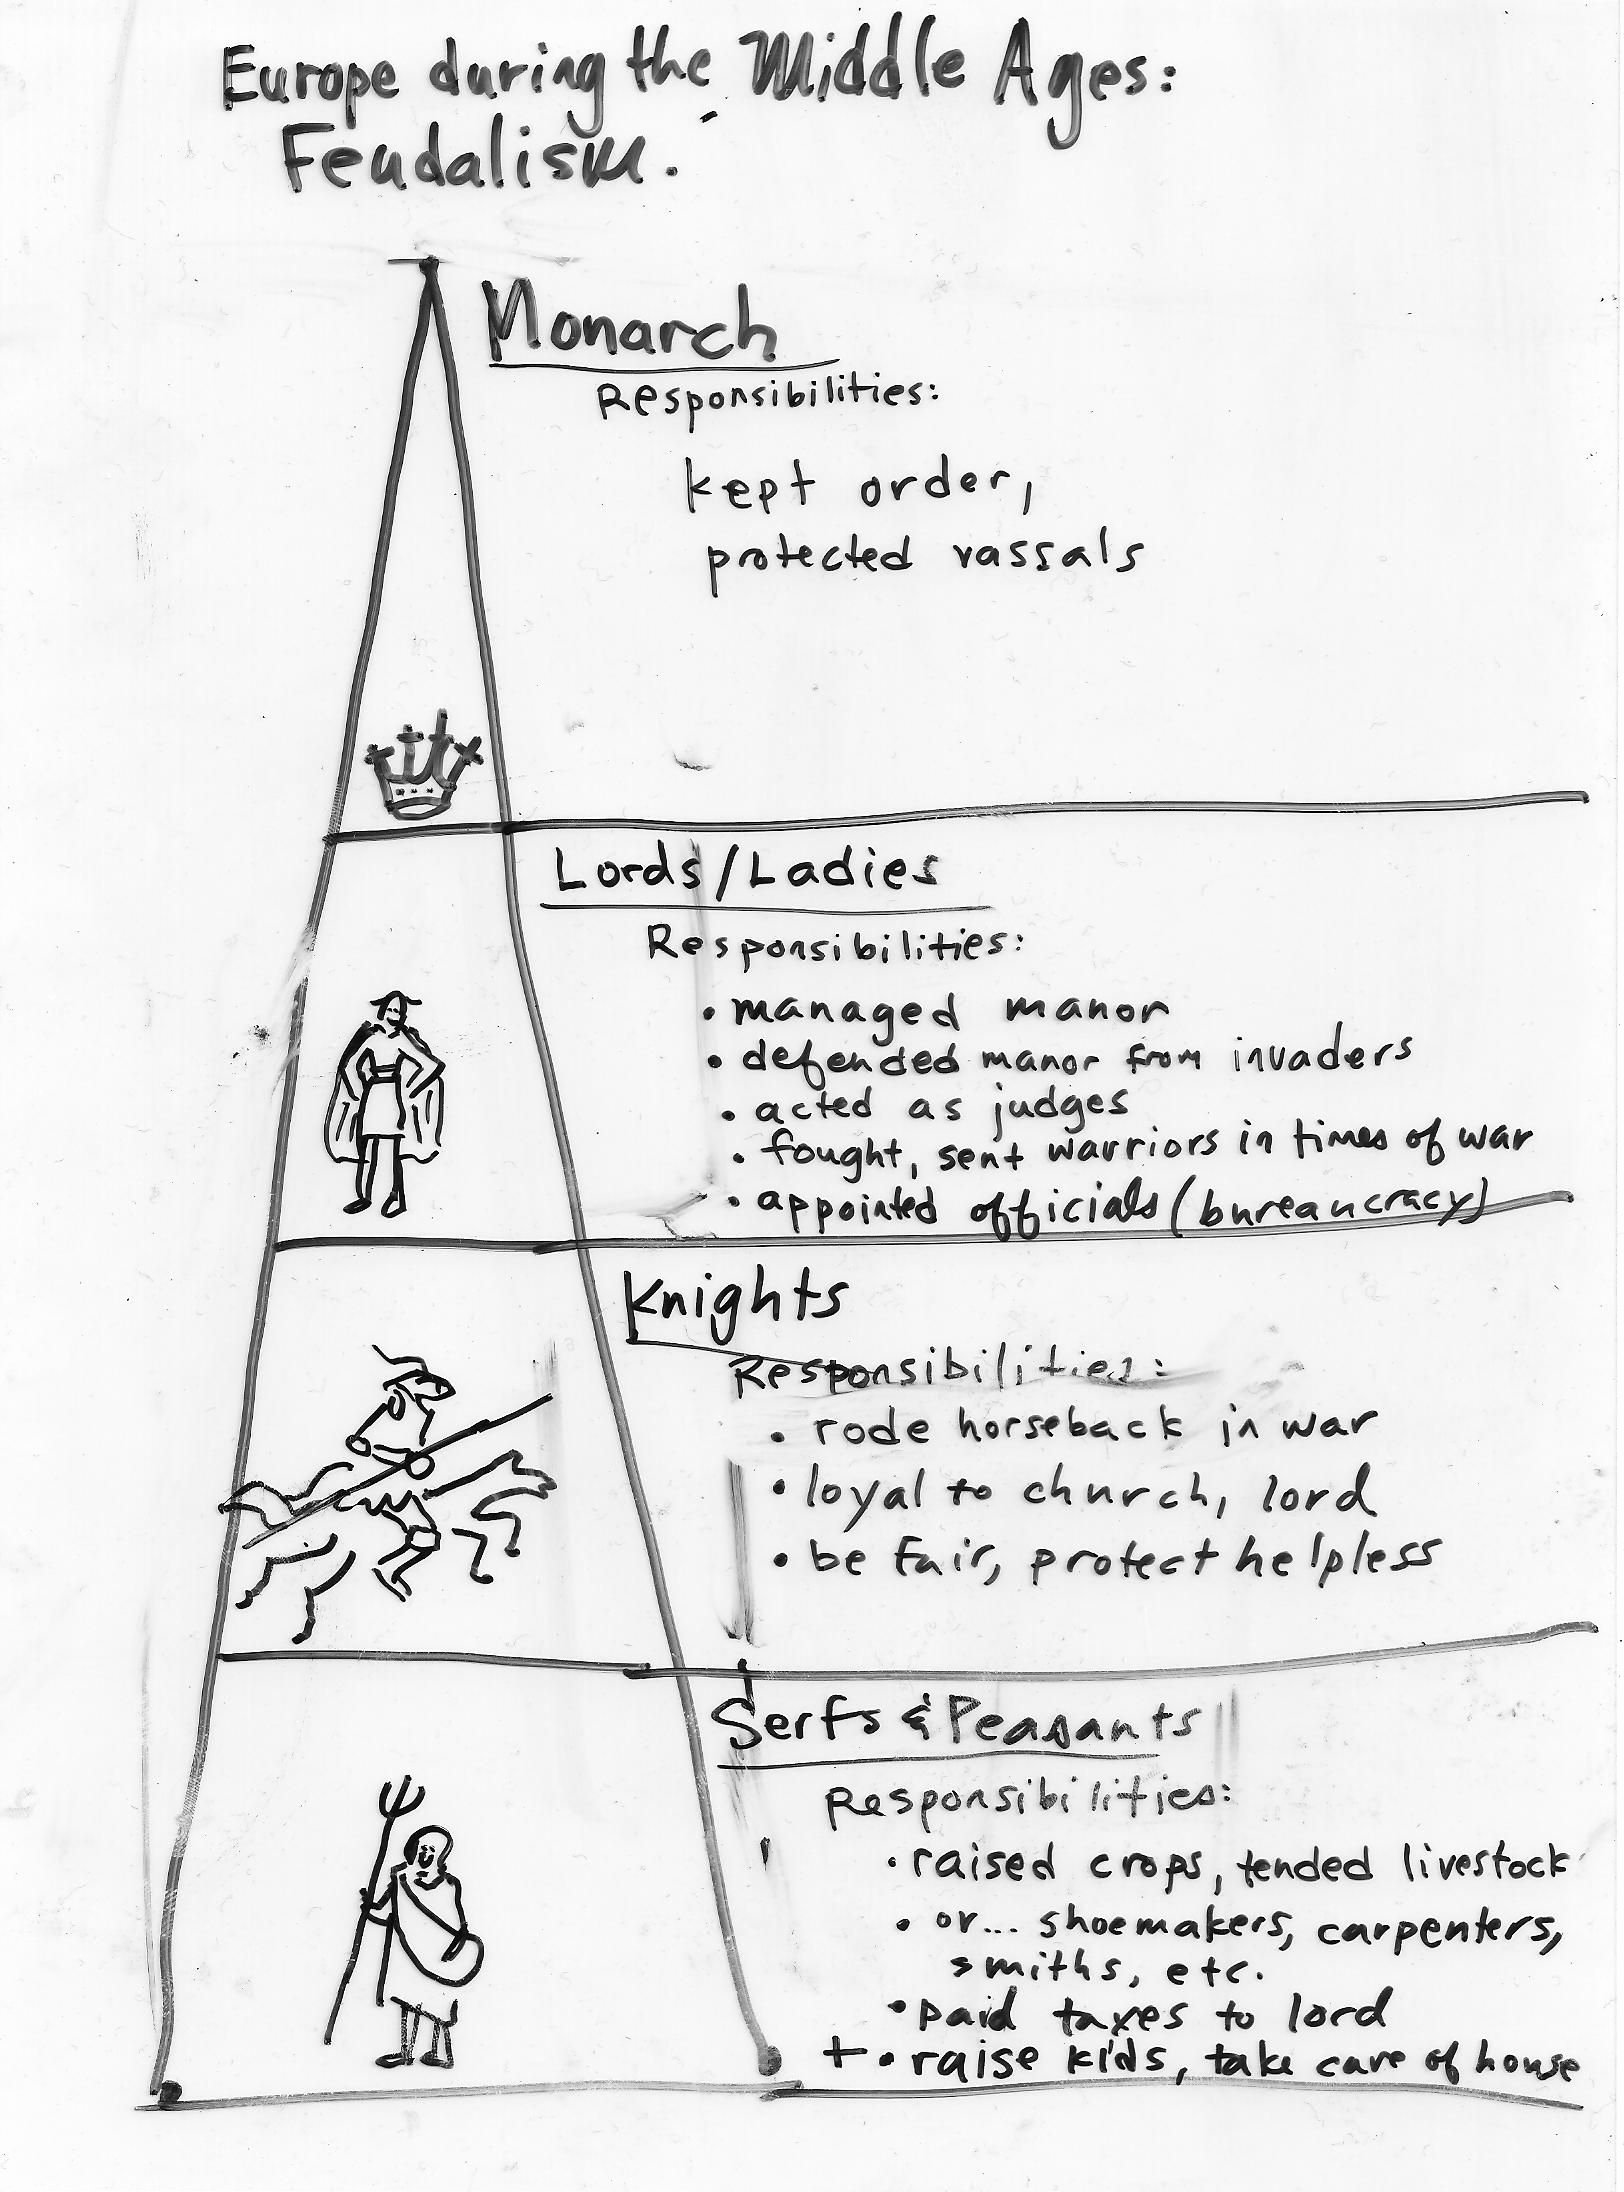 Middle Ages Worksheets 6th Grade Inspirational Feudalism and Responsibility